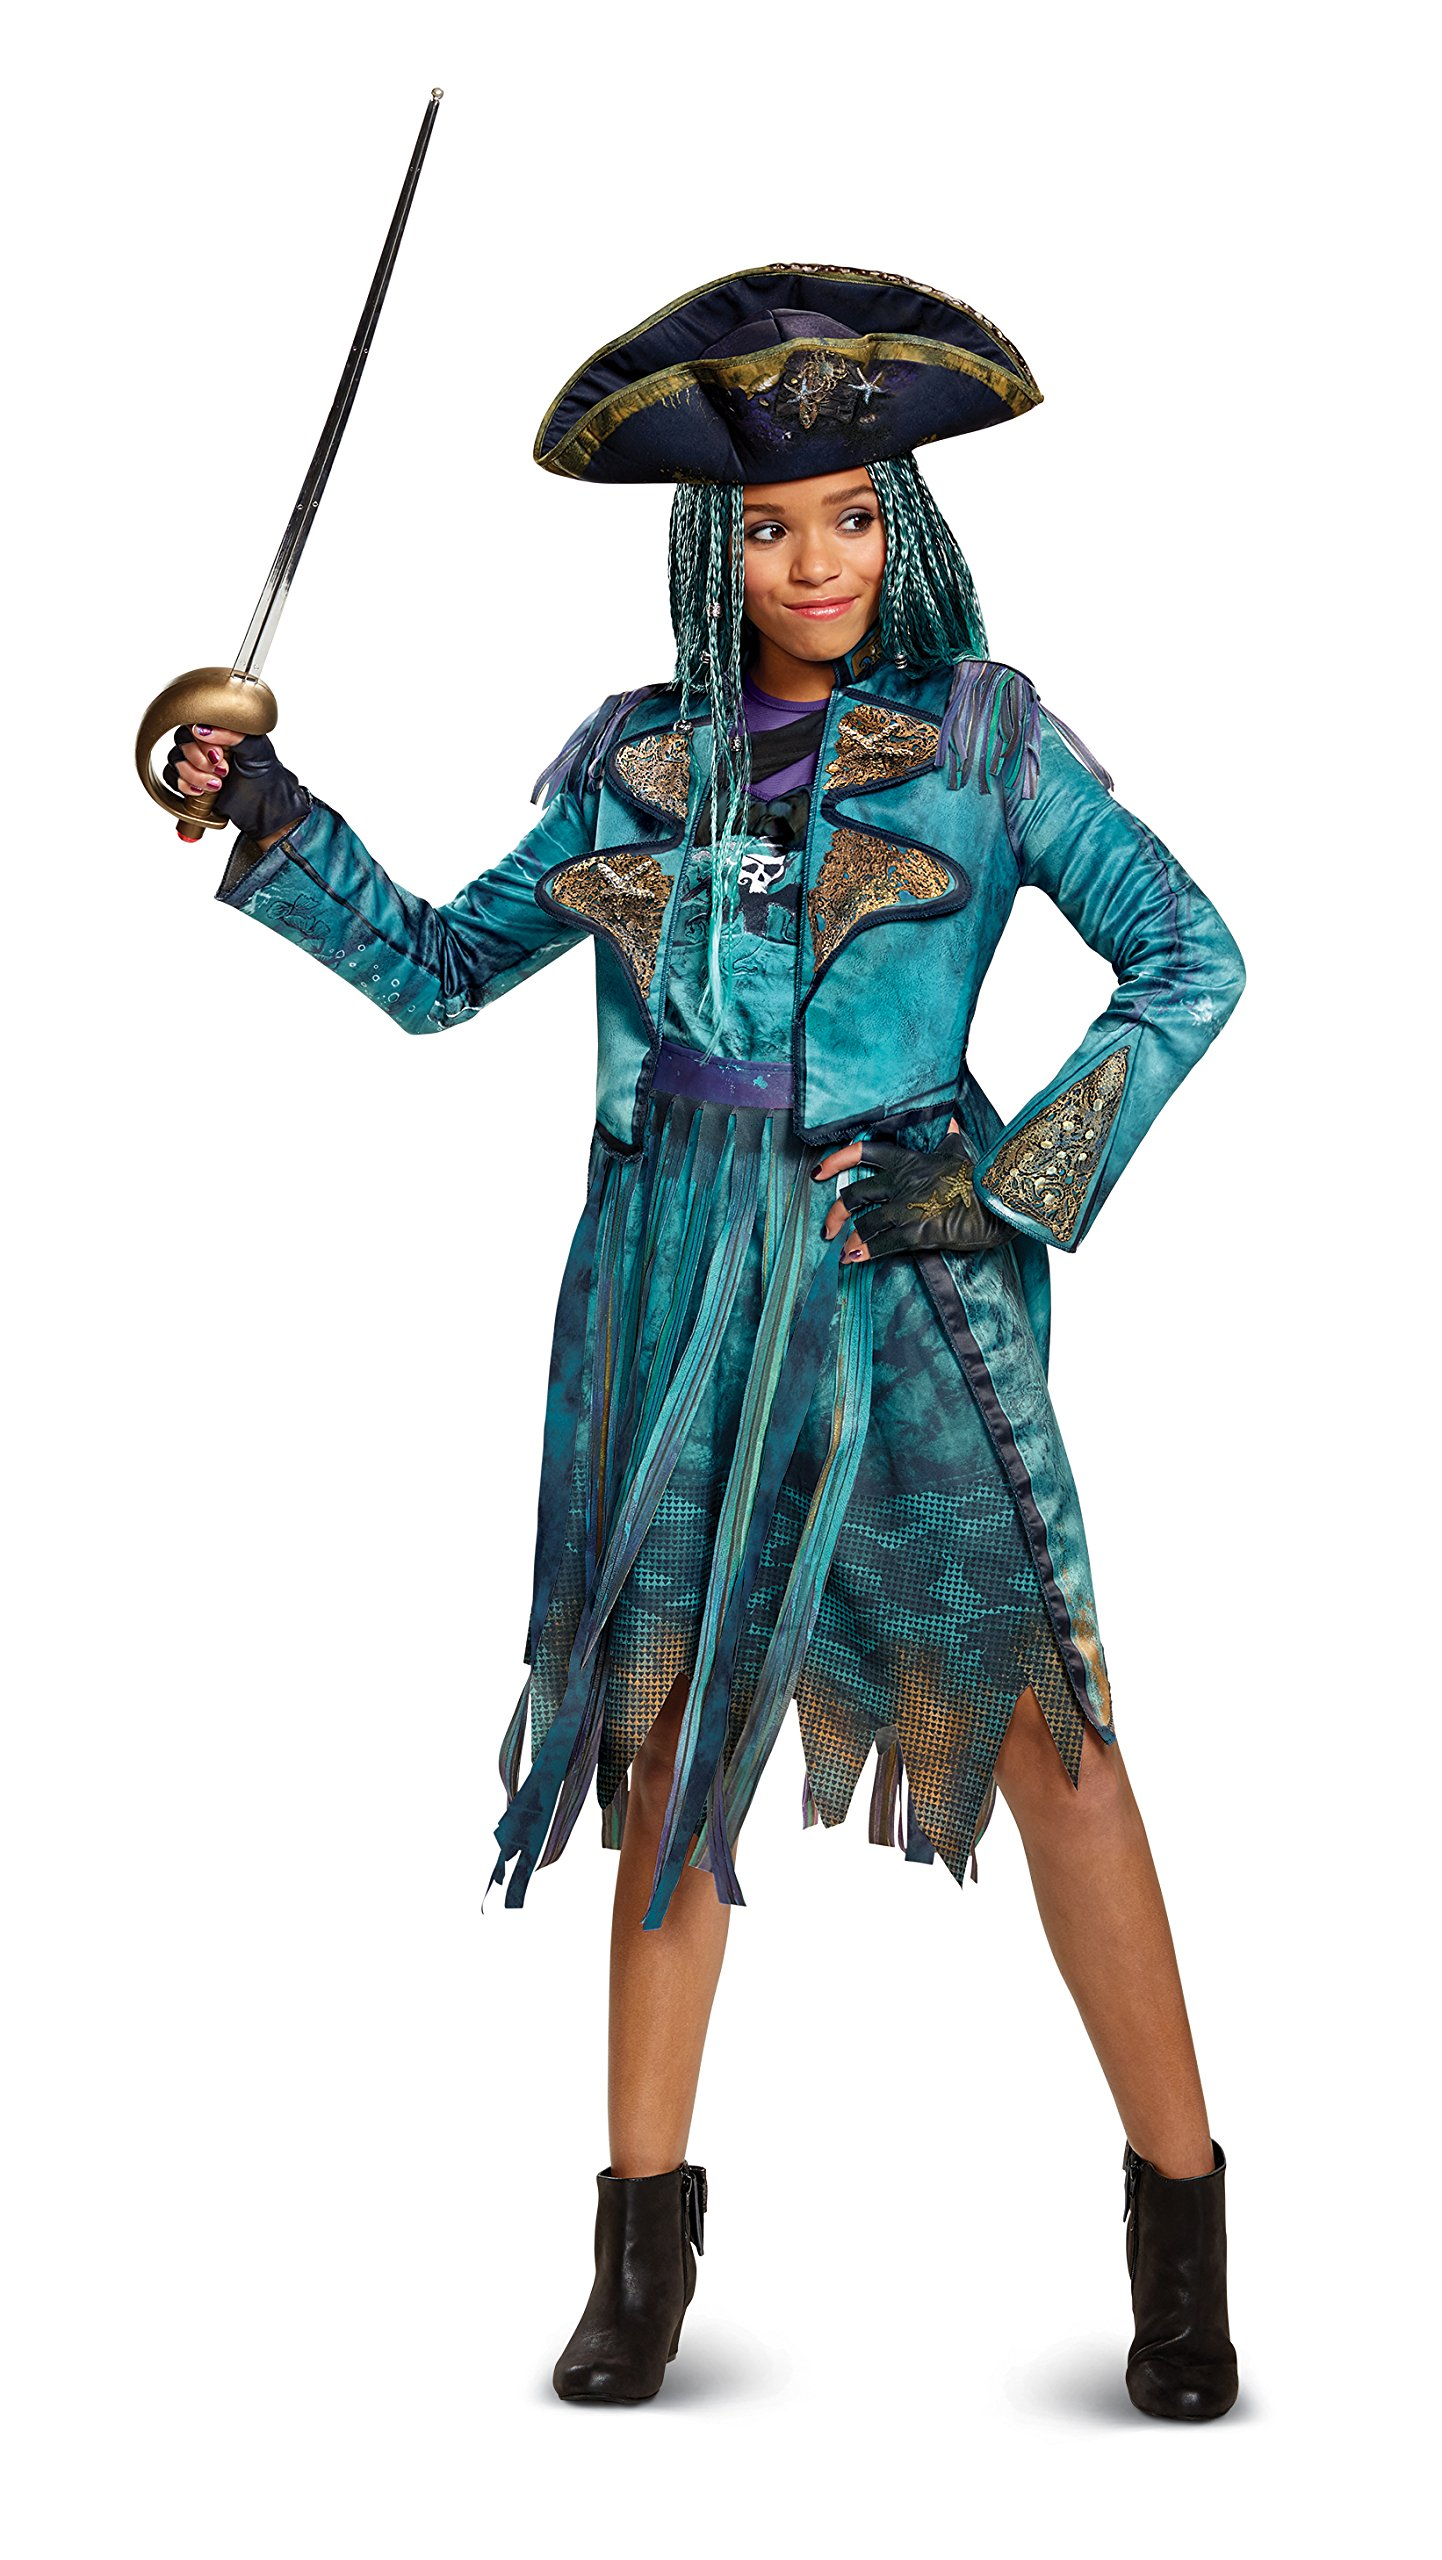 Disney descendants 2 costumes halloween ideas for women in the words of uma herself you can stick a tiara on a villain but shes still a villian solutioingenieria Images